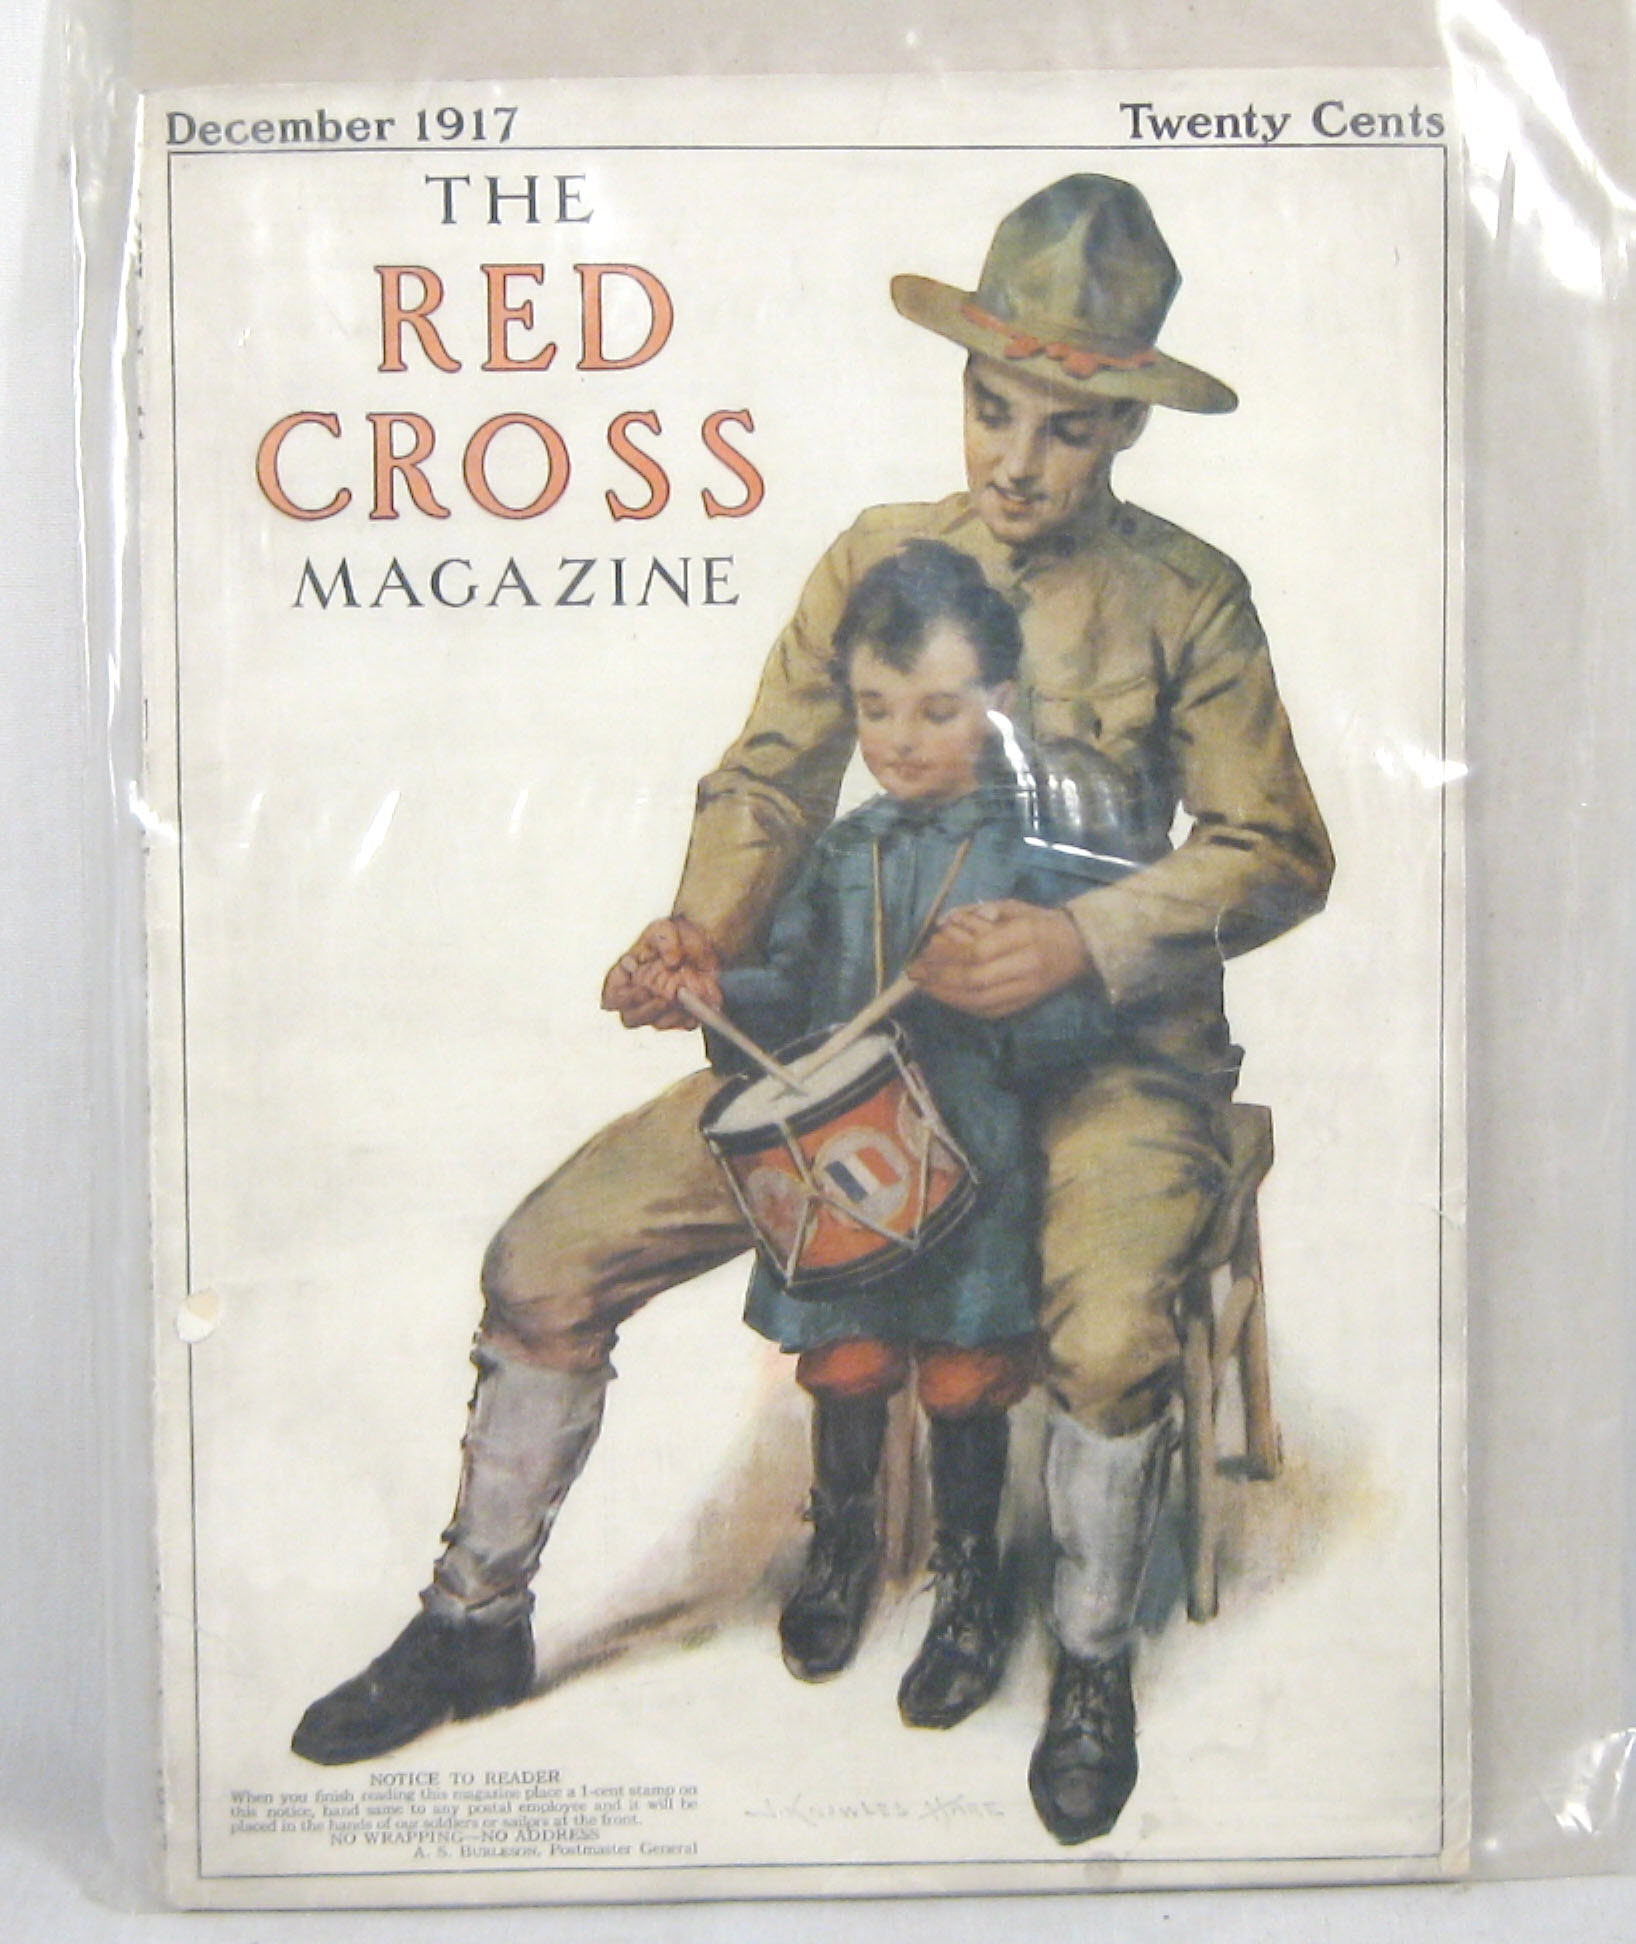 WW1 Vintage Red Cross magazine Dec 1917 - Click Image to Close